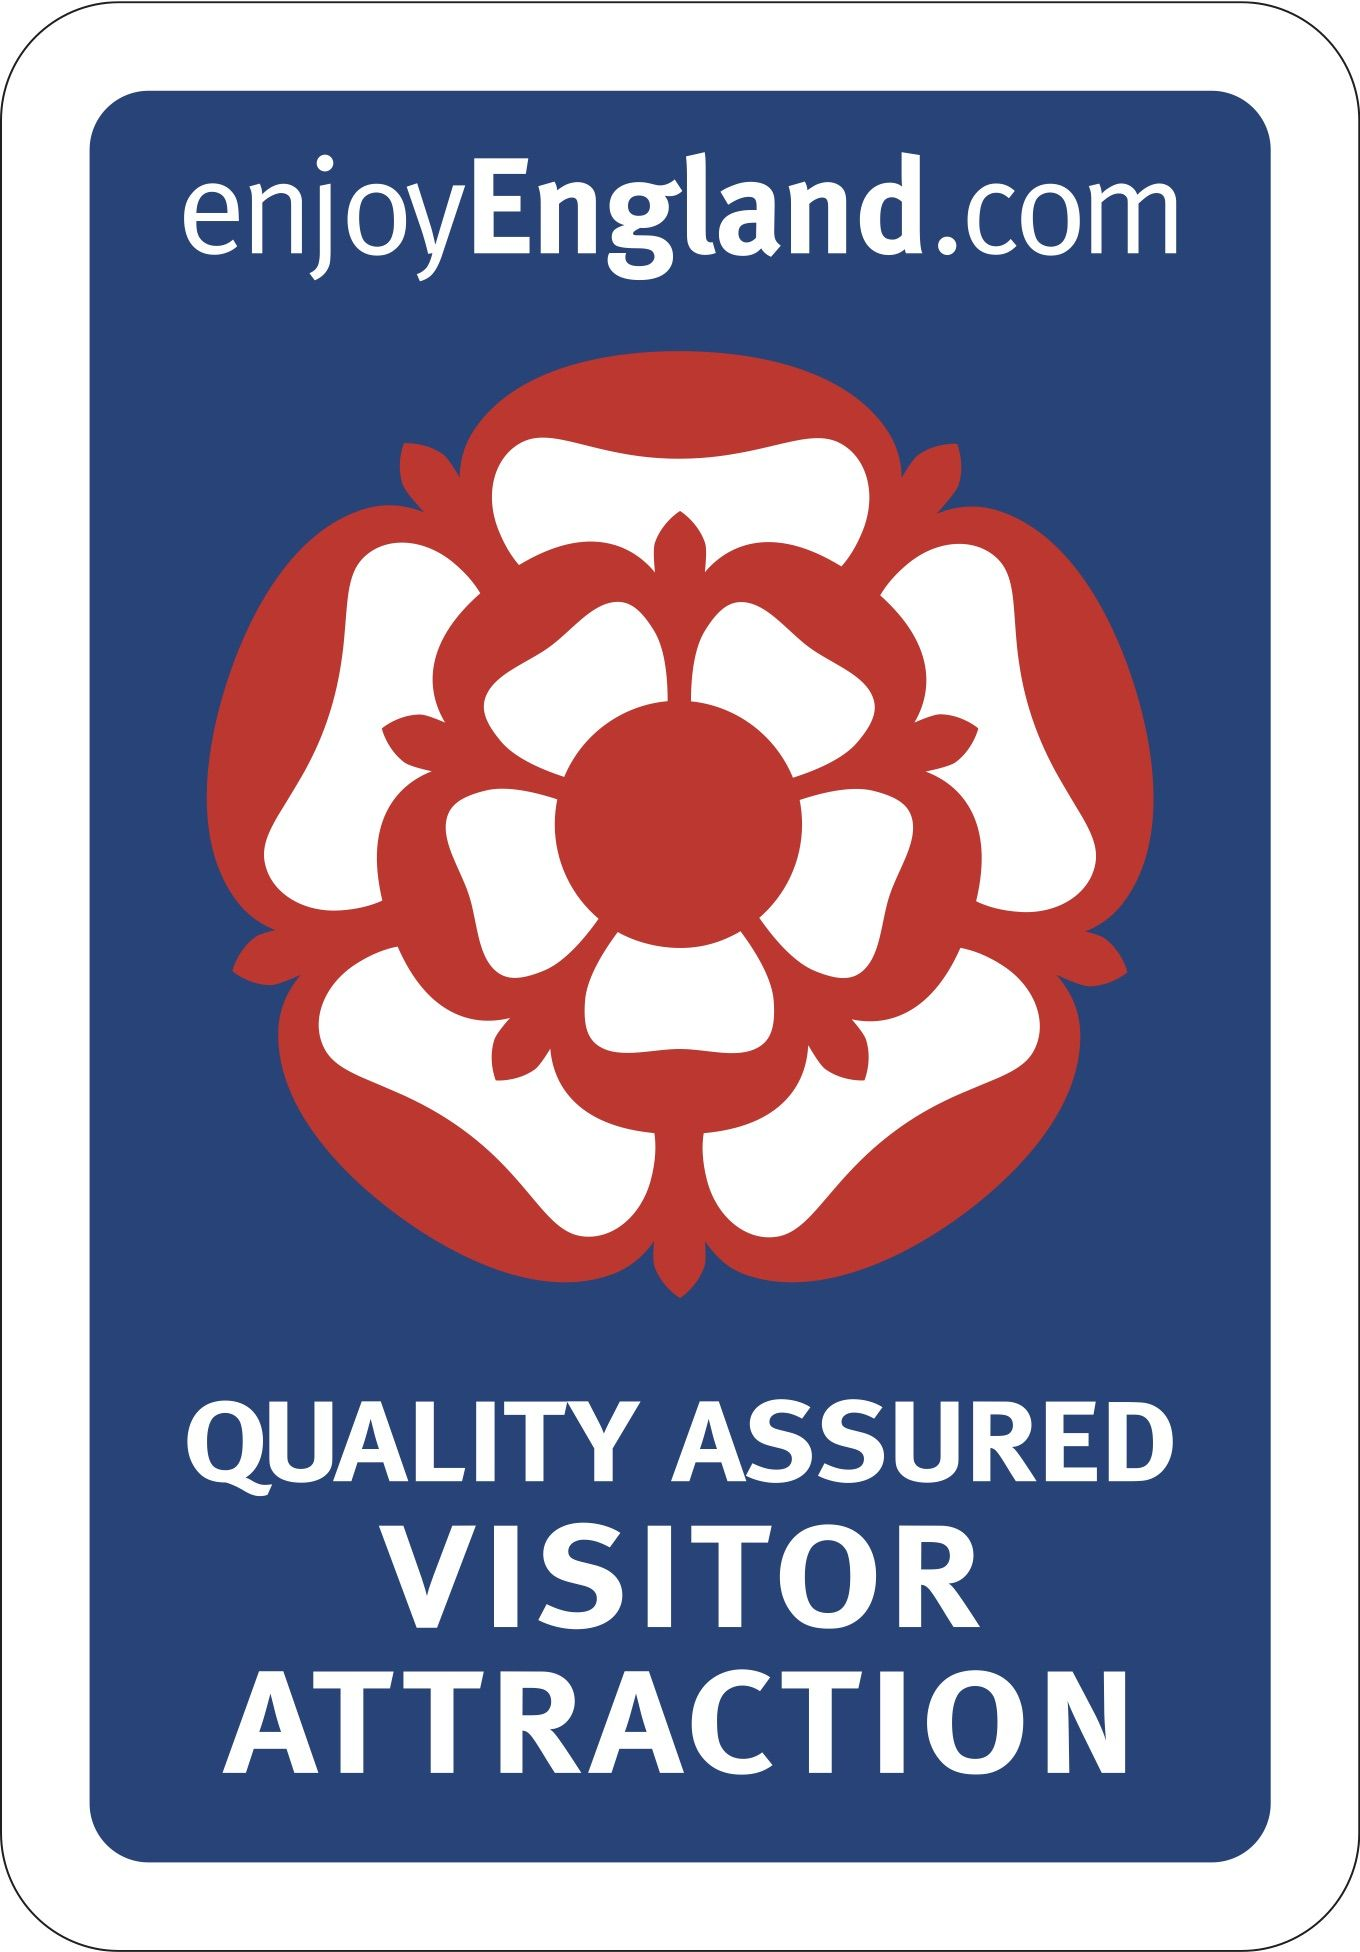 Quality assured visitor attraction - enjoyengland.com